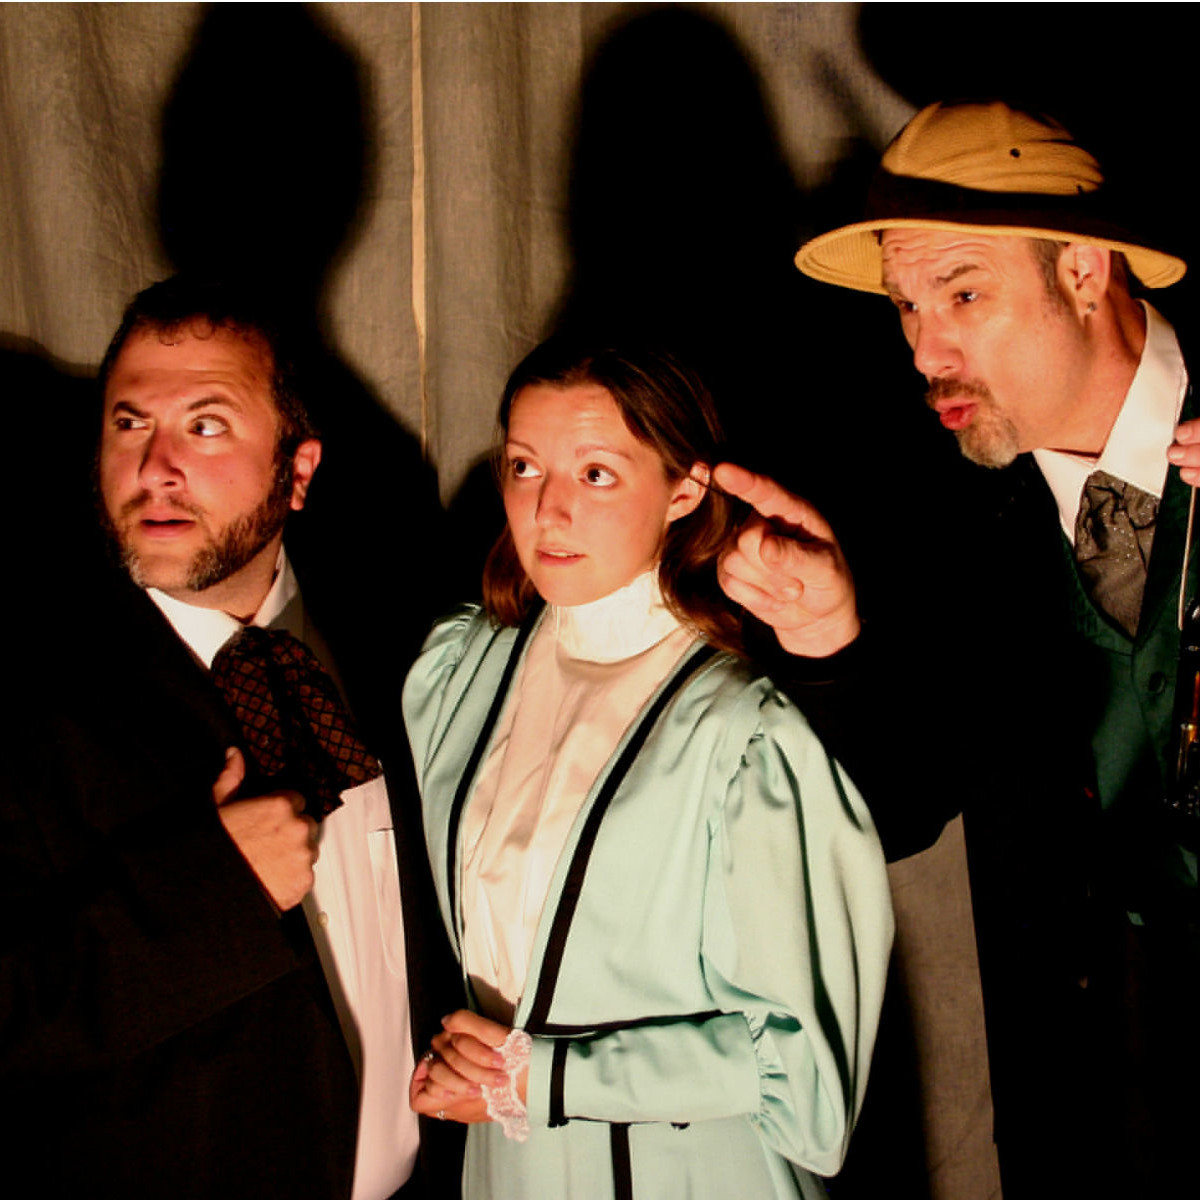 Pocket Sandwich Theatre presents The Werewolf of London